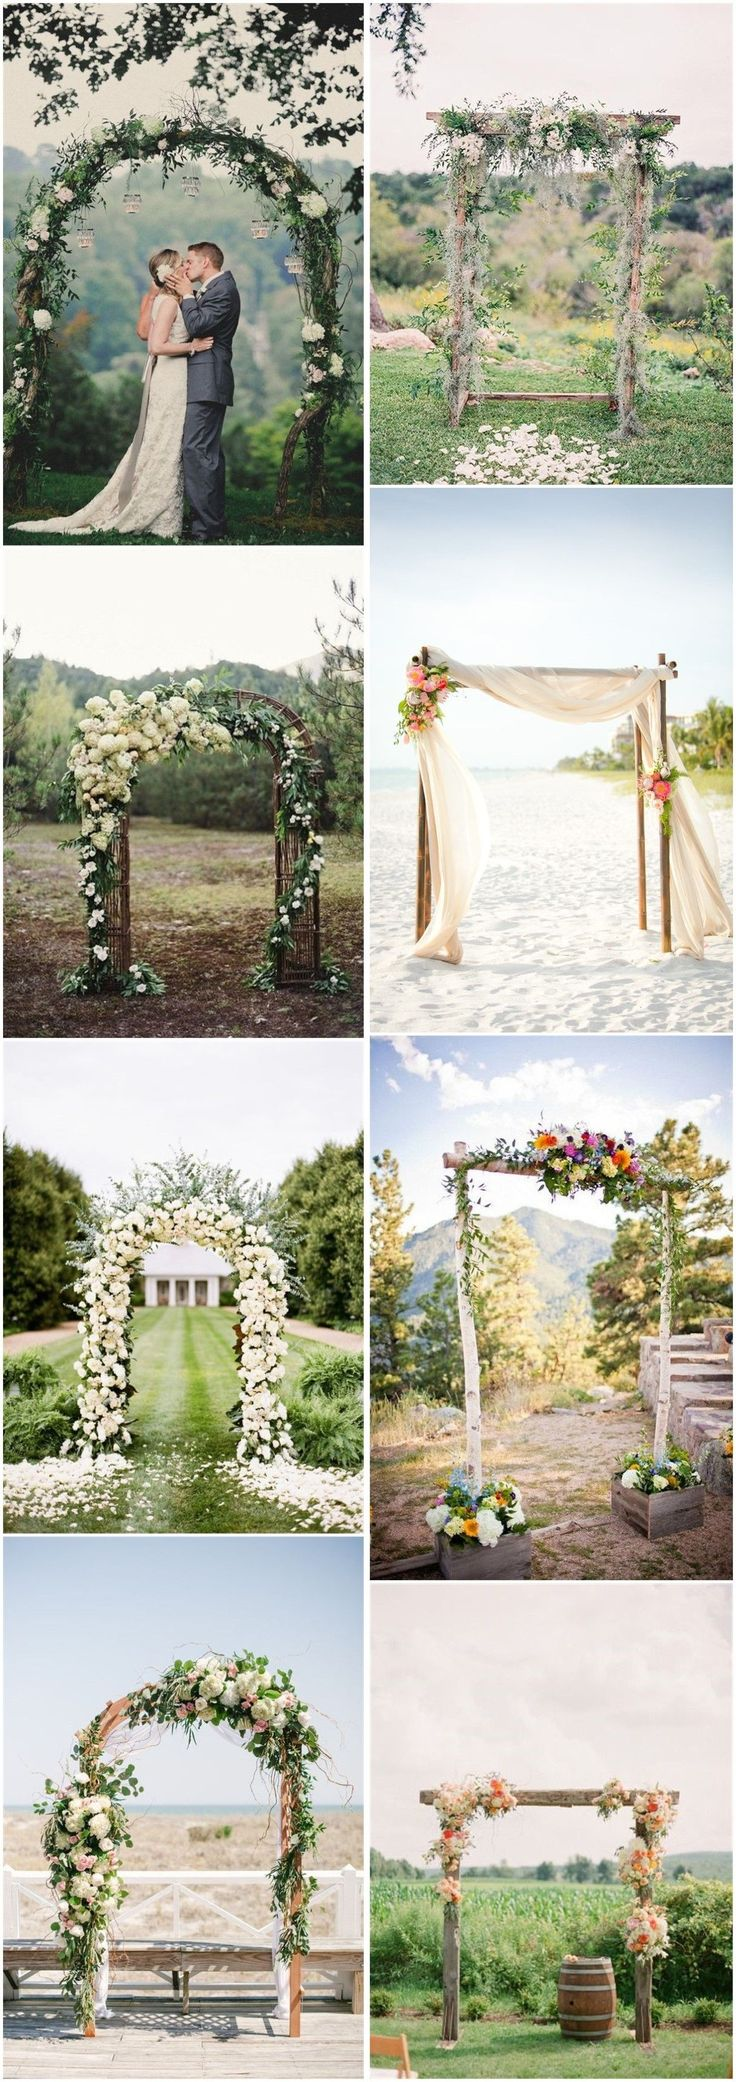 25 best ideas about rustic wedding arches on pinterest for Arches decoration ideas